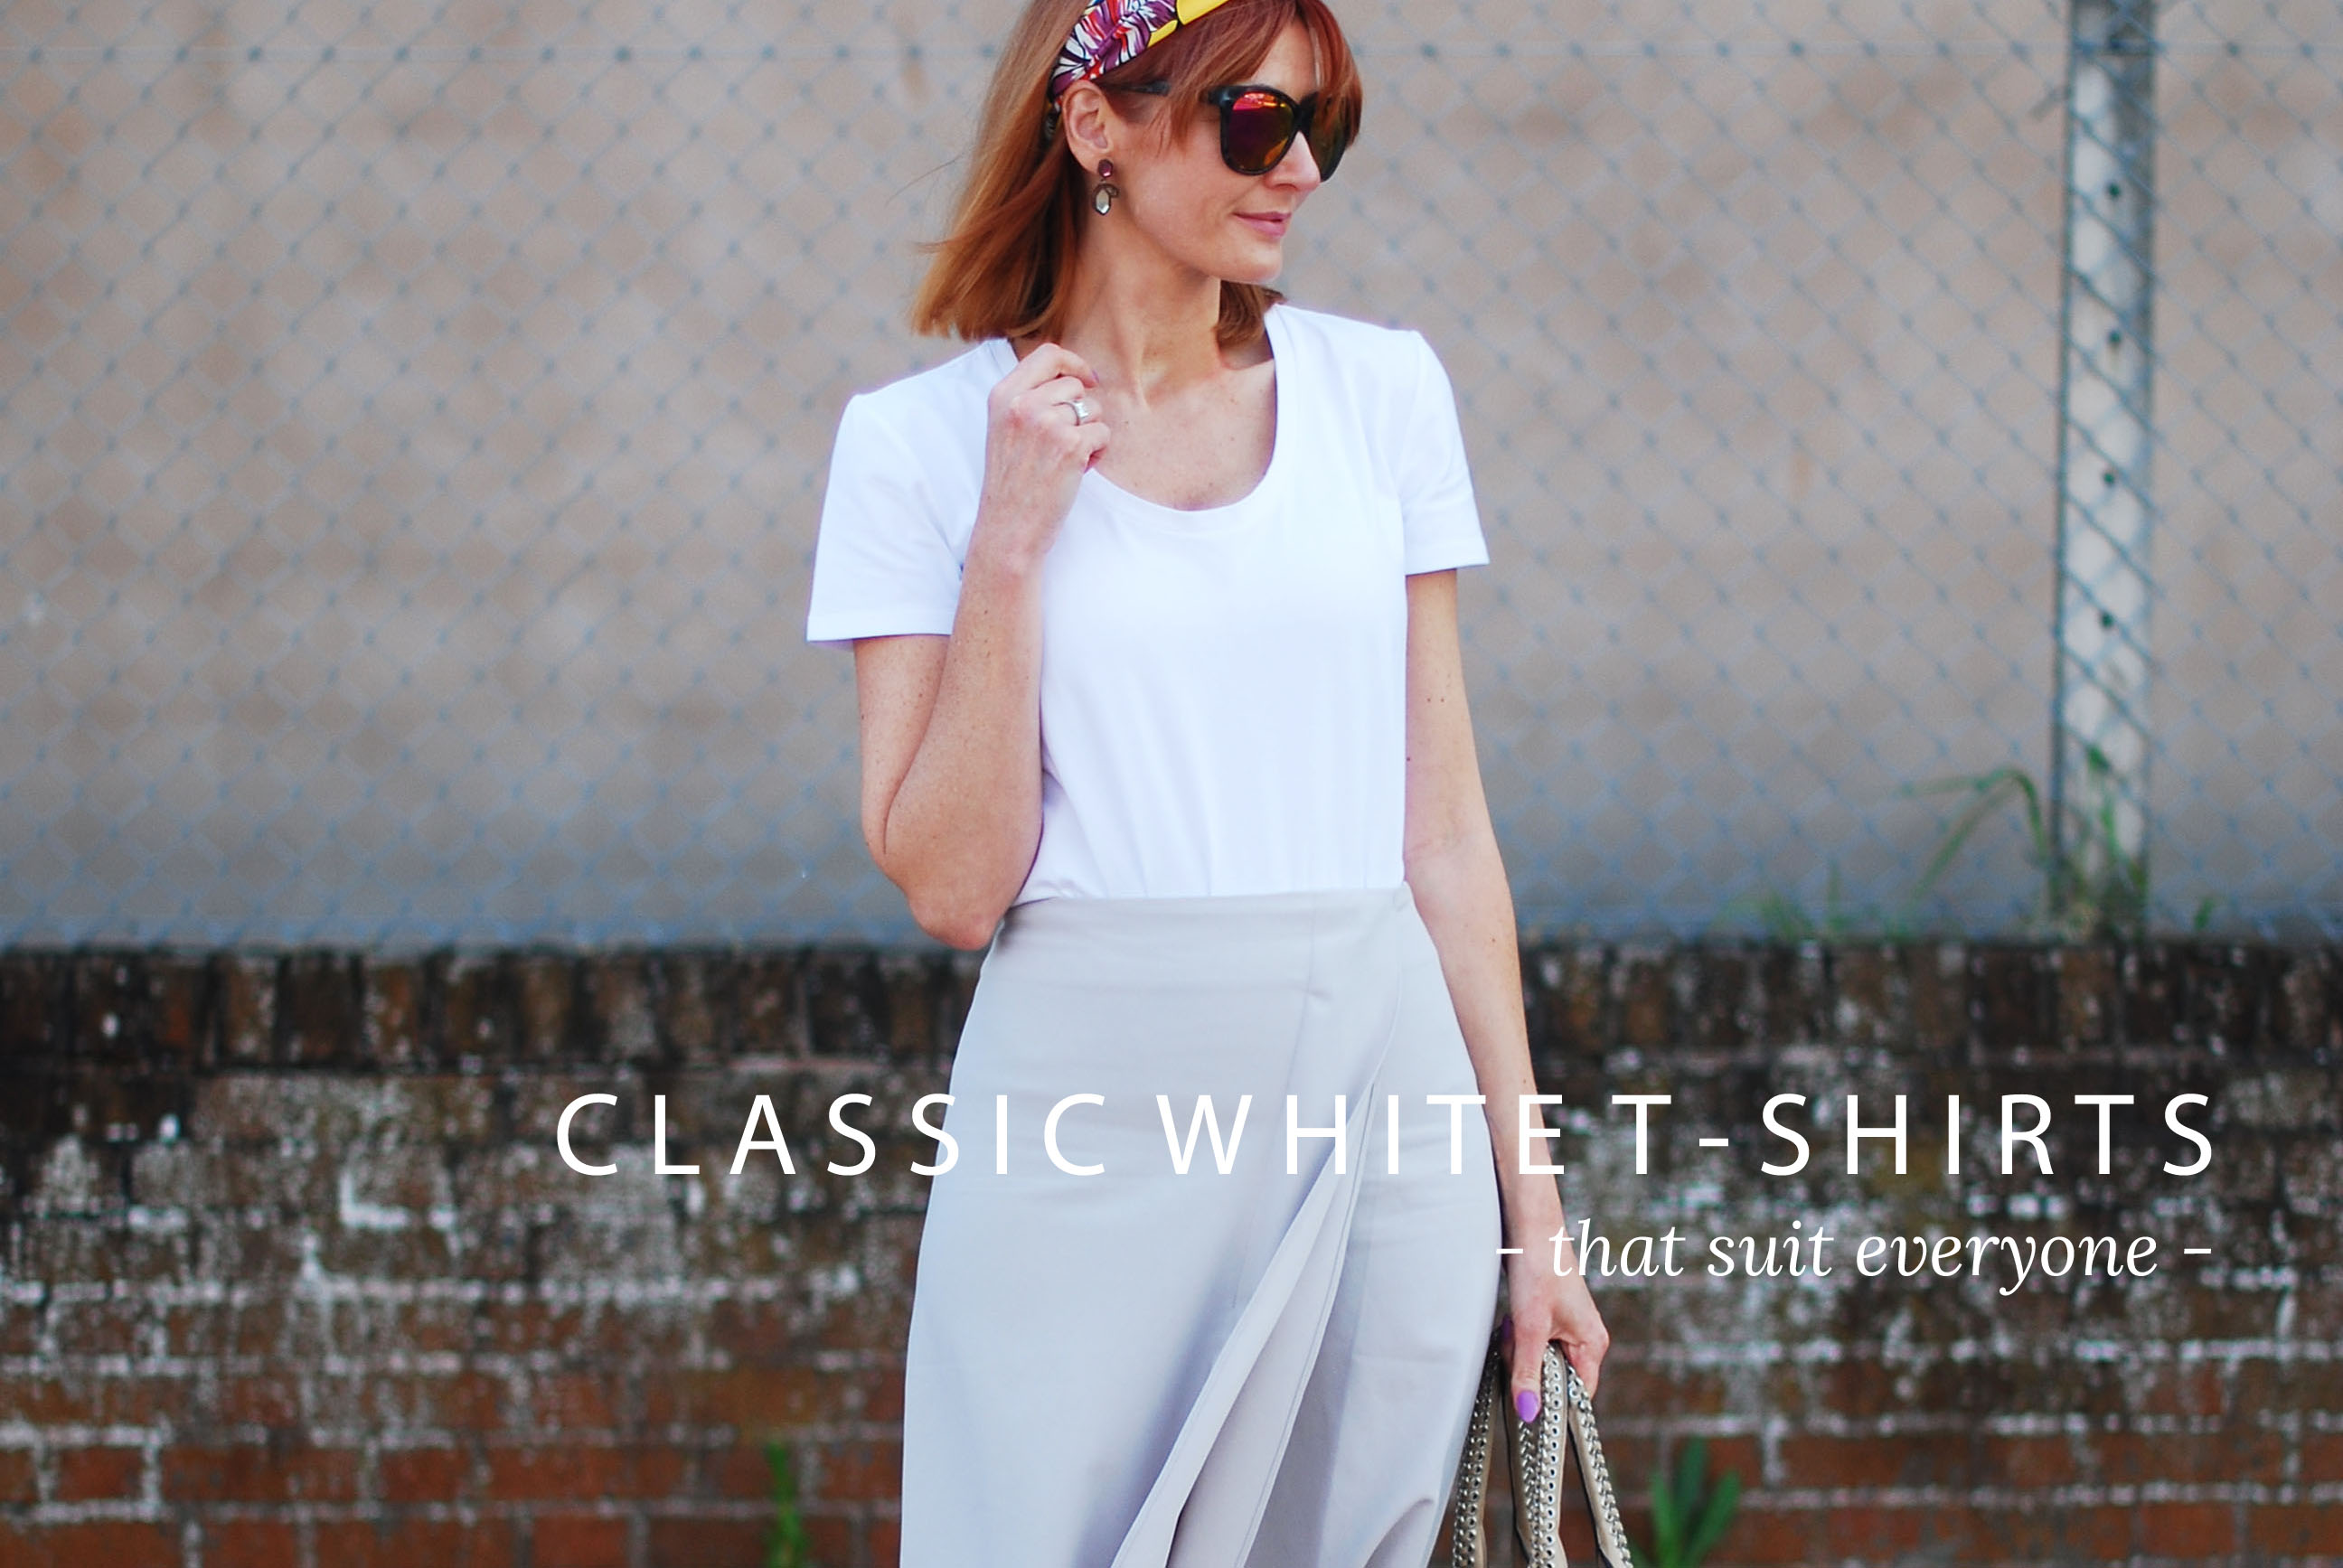 Capsule Wardrobe Pieces That Suit All Body Shapes & Sizes - No.4 Plain White Tee (9 Classic White T-Shirts)